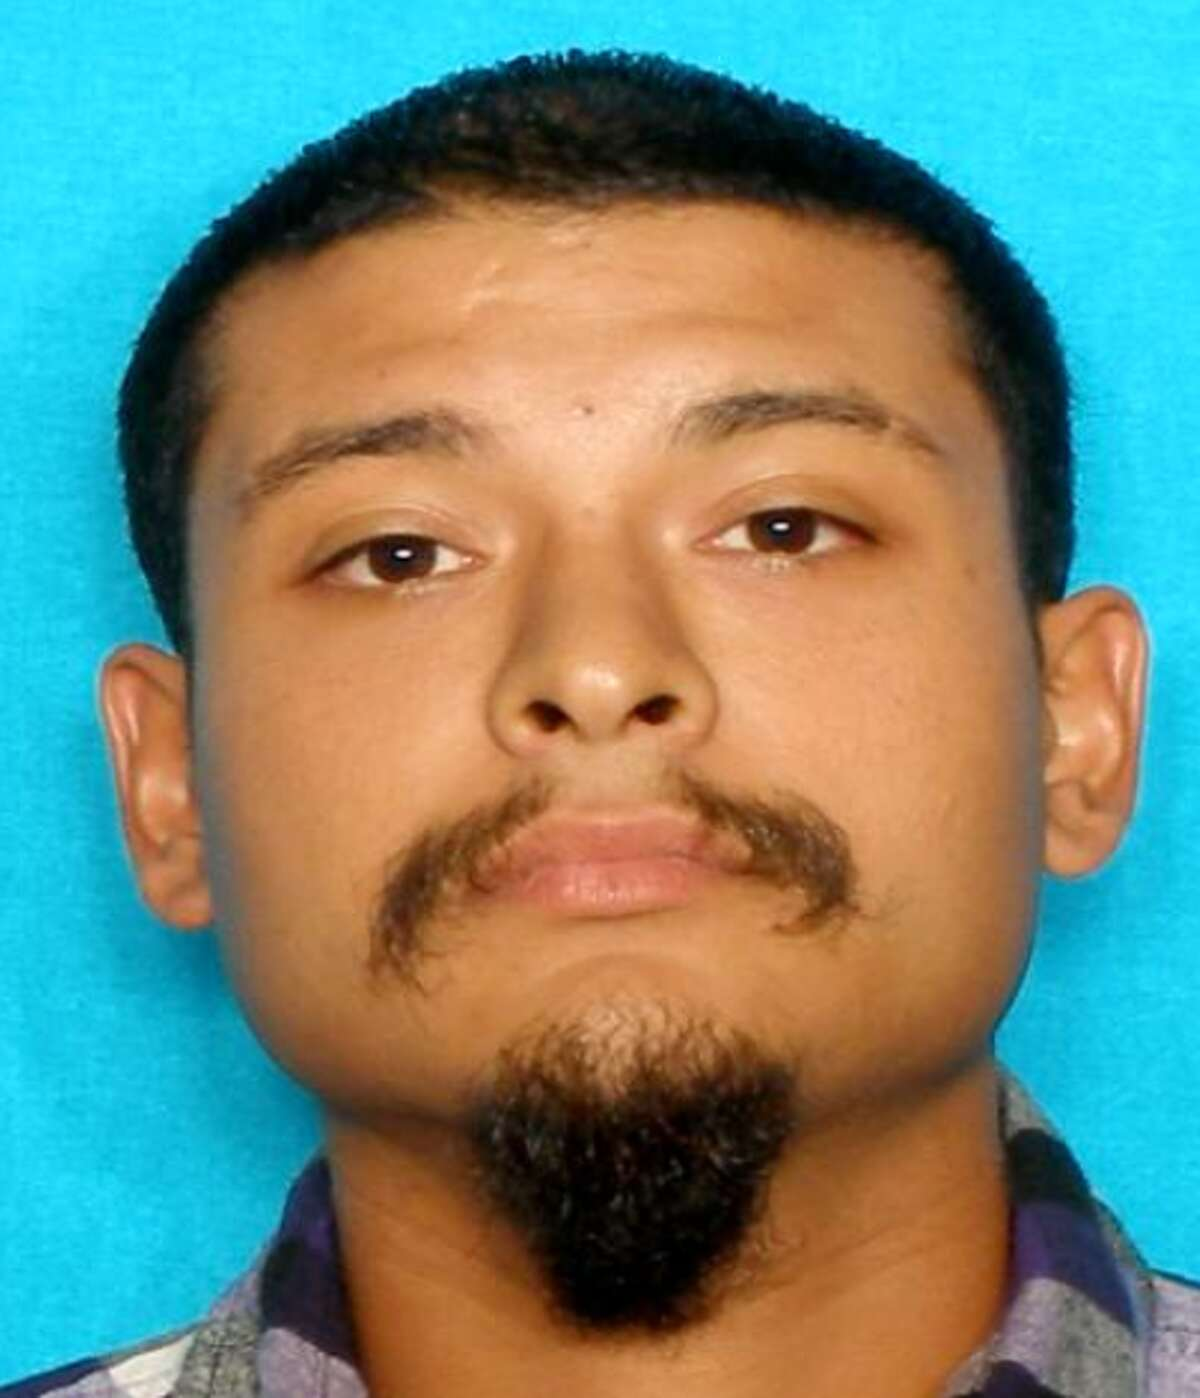 Sijifredo Montemayor, 30, is believed to be involved in the shooting of a Balcones Heights police sergeant.